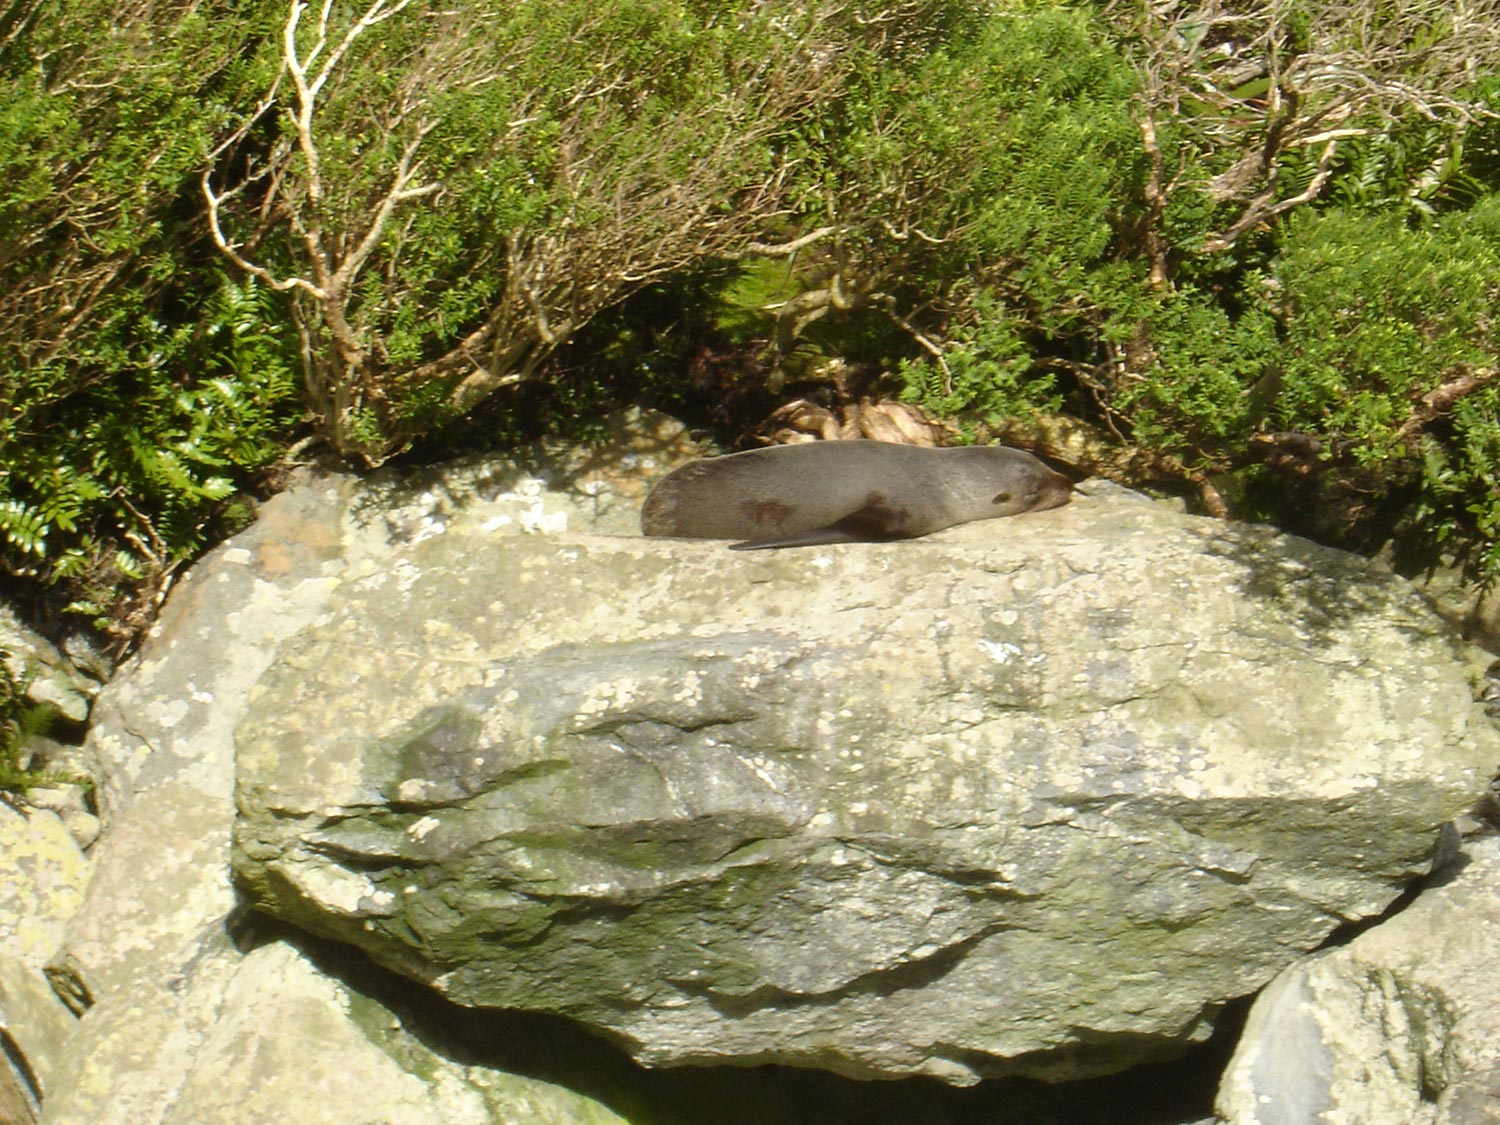 New Zealand Fur Seal laying on a rock